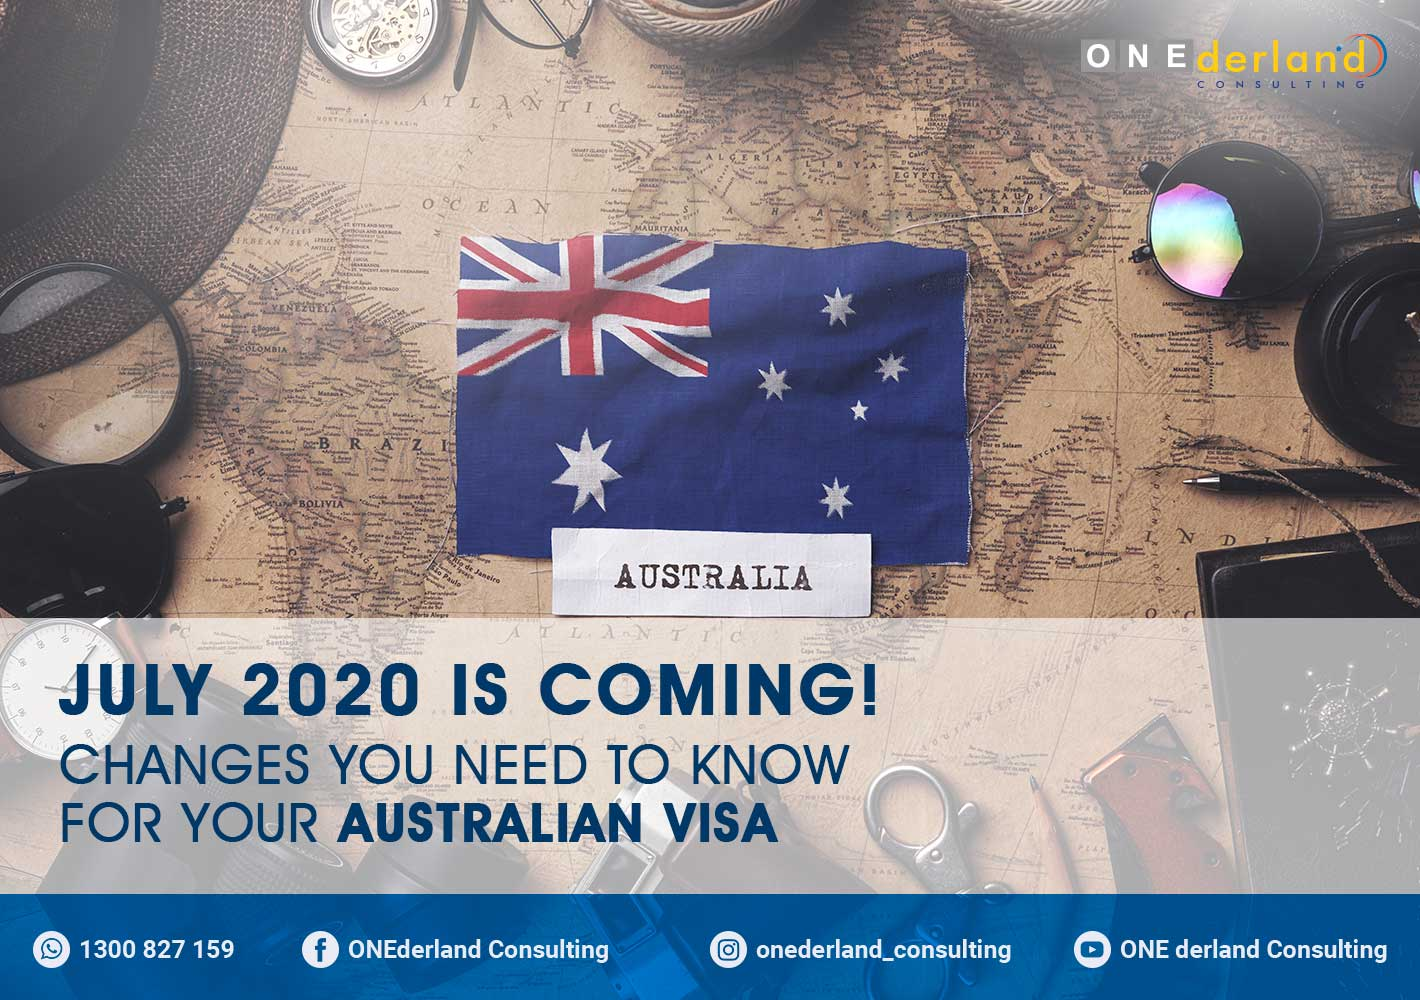 JULY 2020 IS COMING CHANGES YOU NEED TO KNOW FOR YOUR AUSTRALIAN VISA